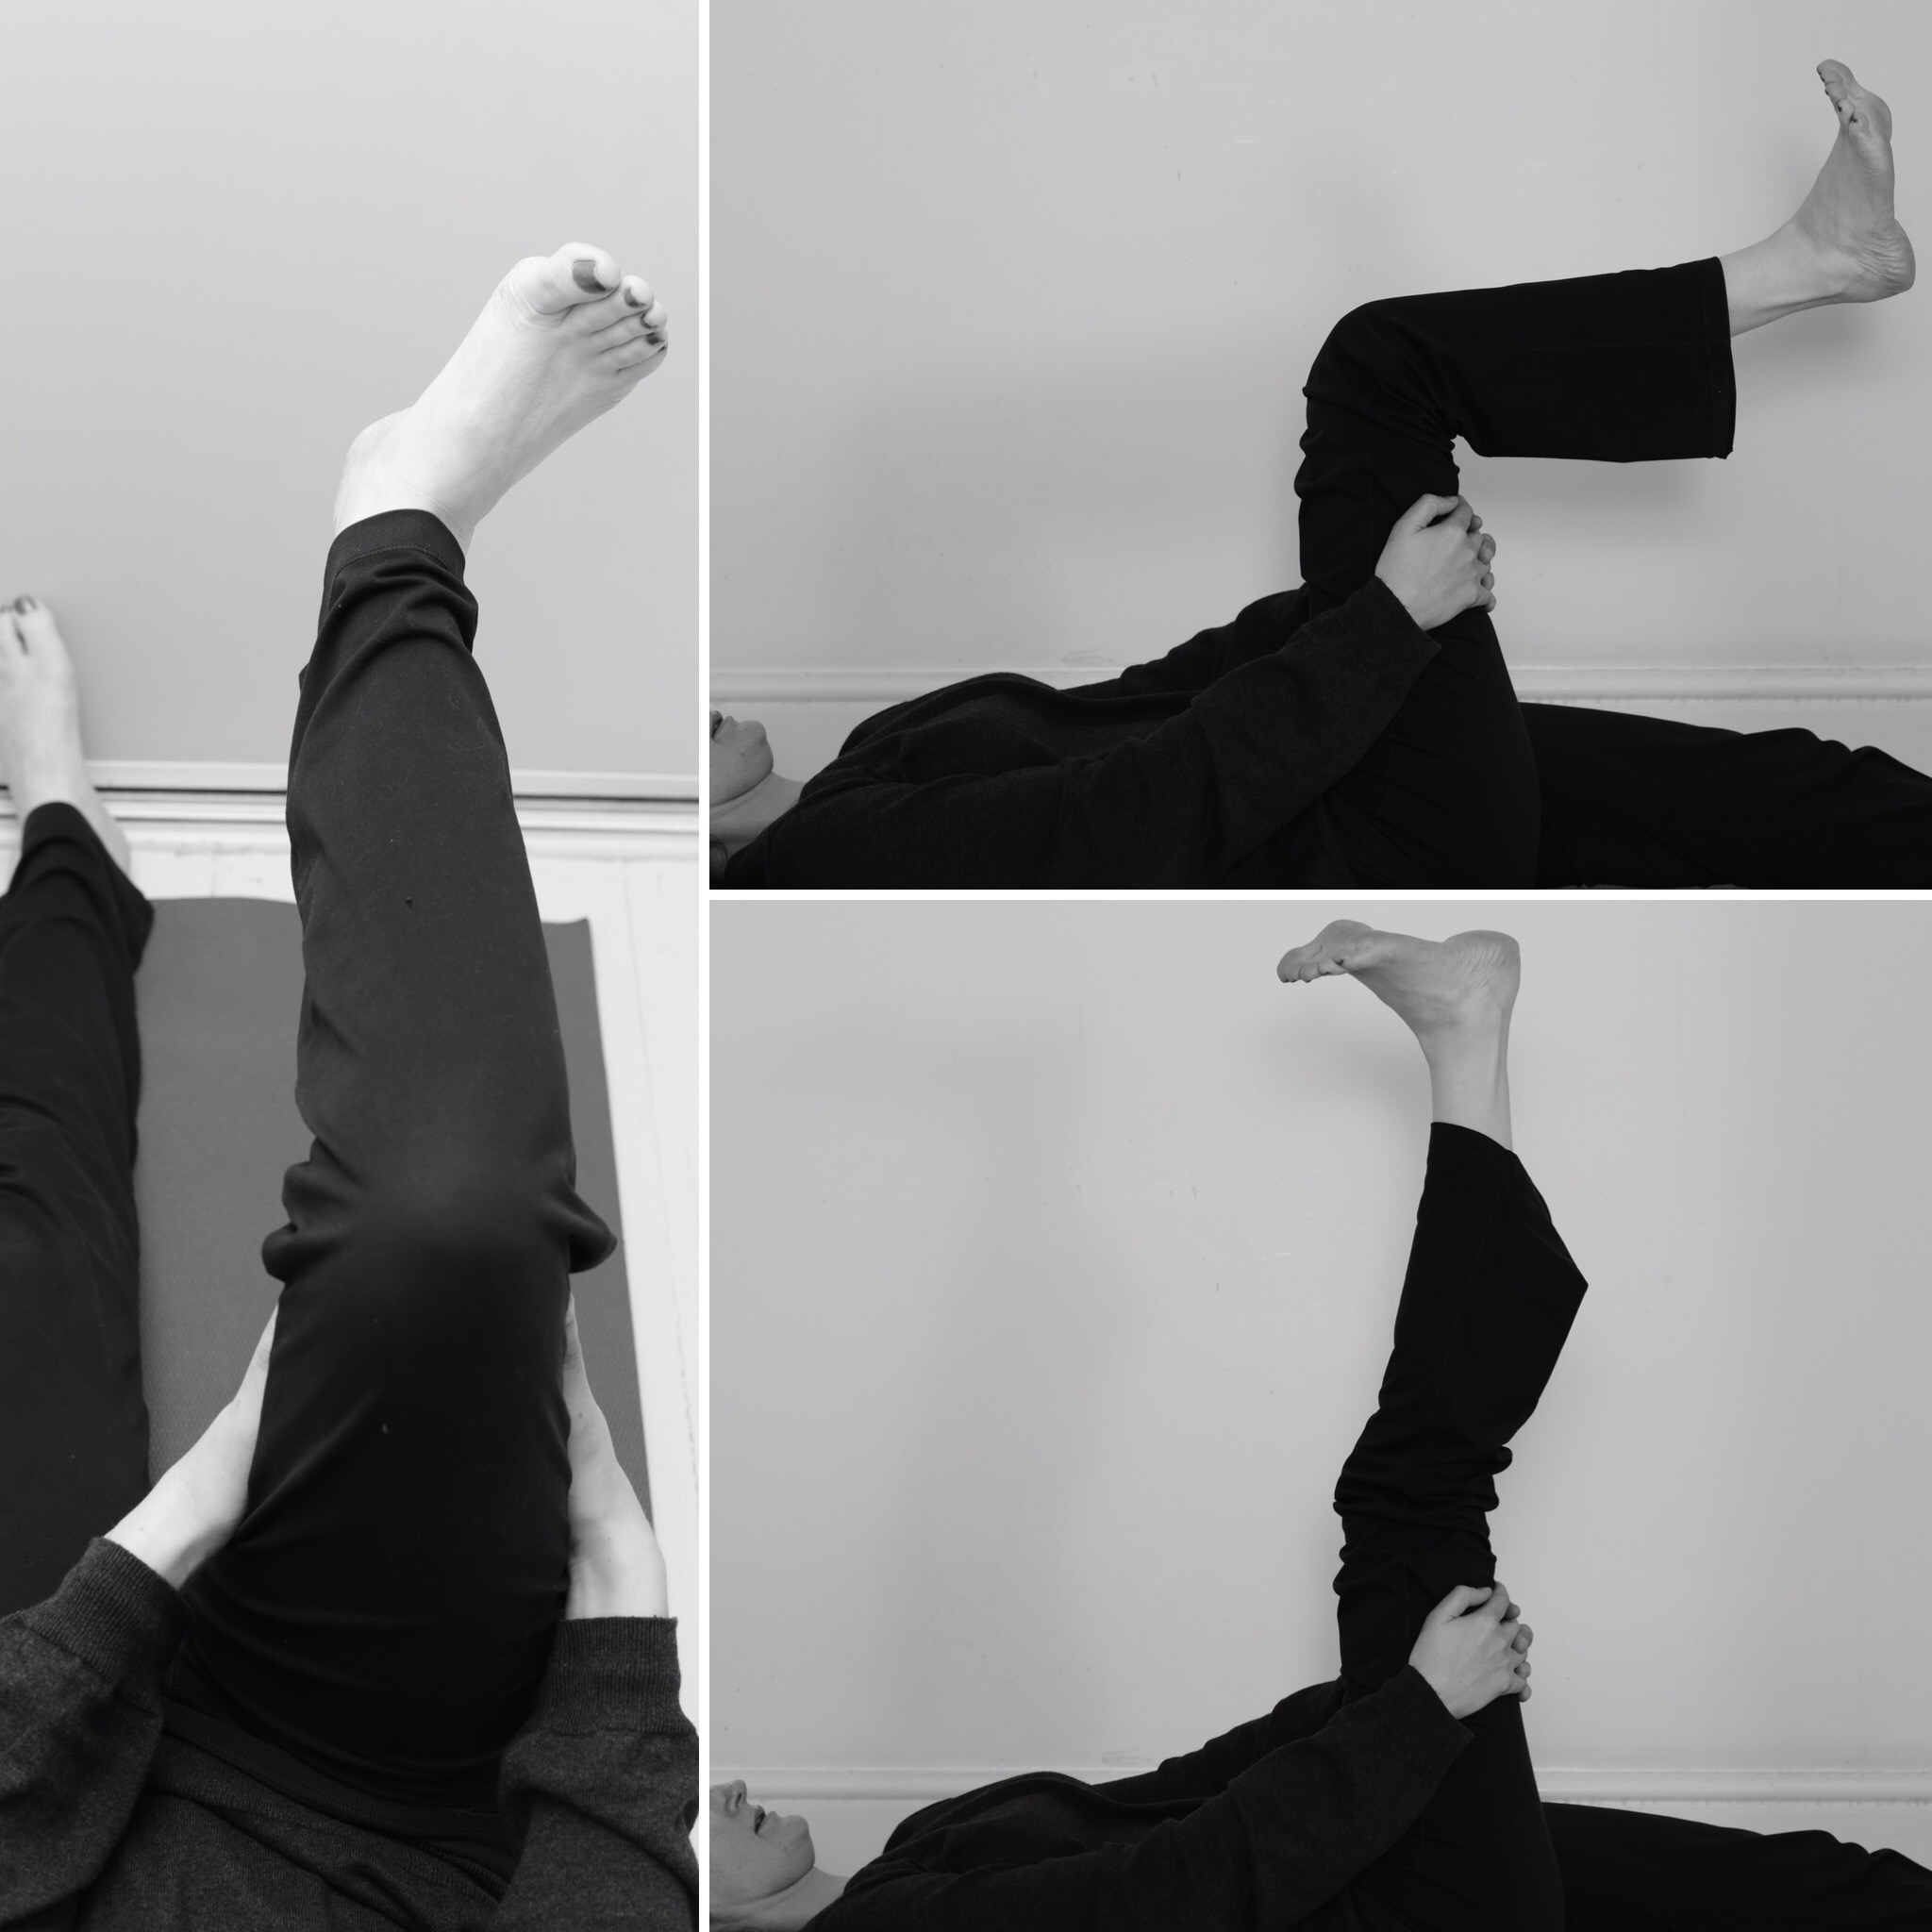 Nerve gliding exercise